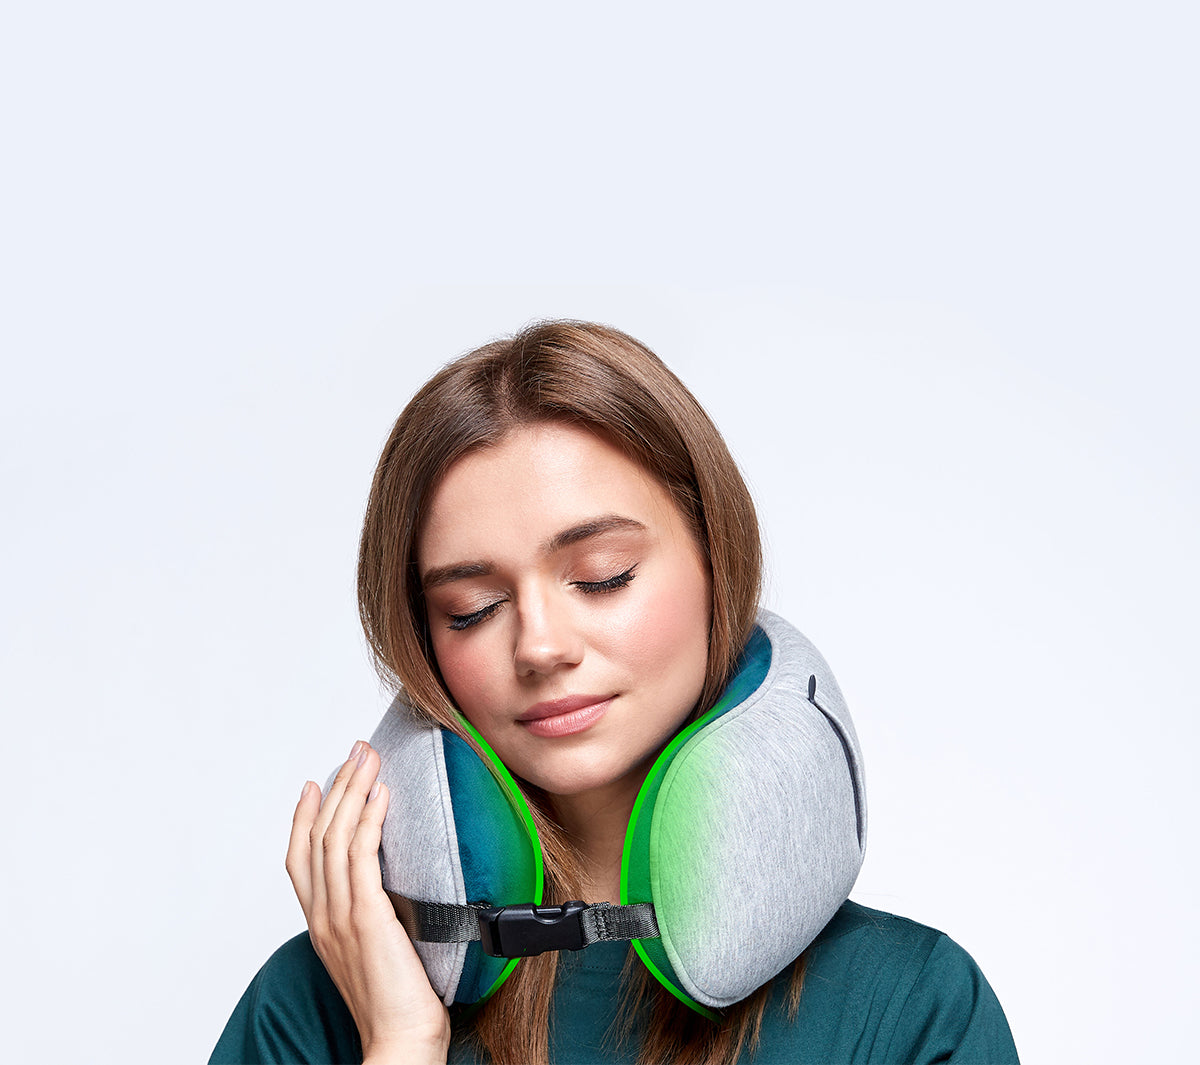 Ergonomic Neck Support